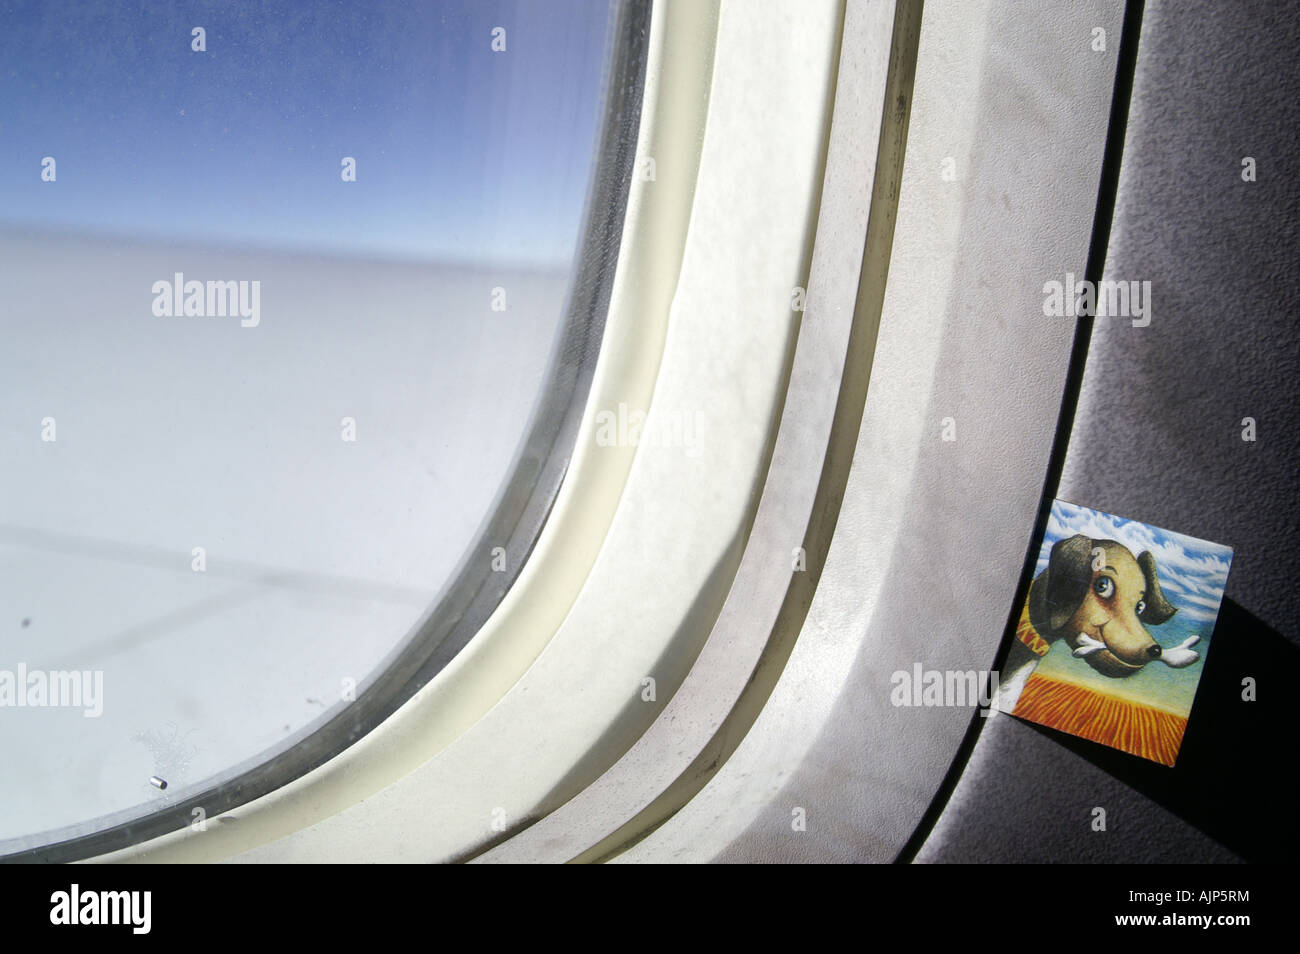 Smiling dog flying high altitude in plane near airplane window above white cloud under blue sky - Stock Image